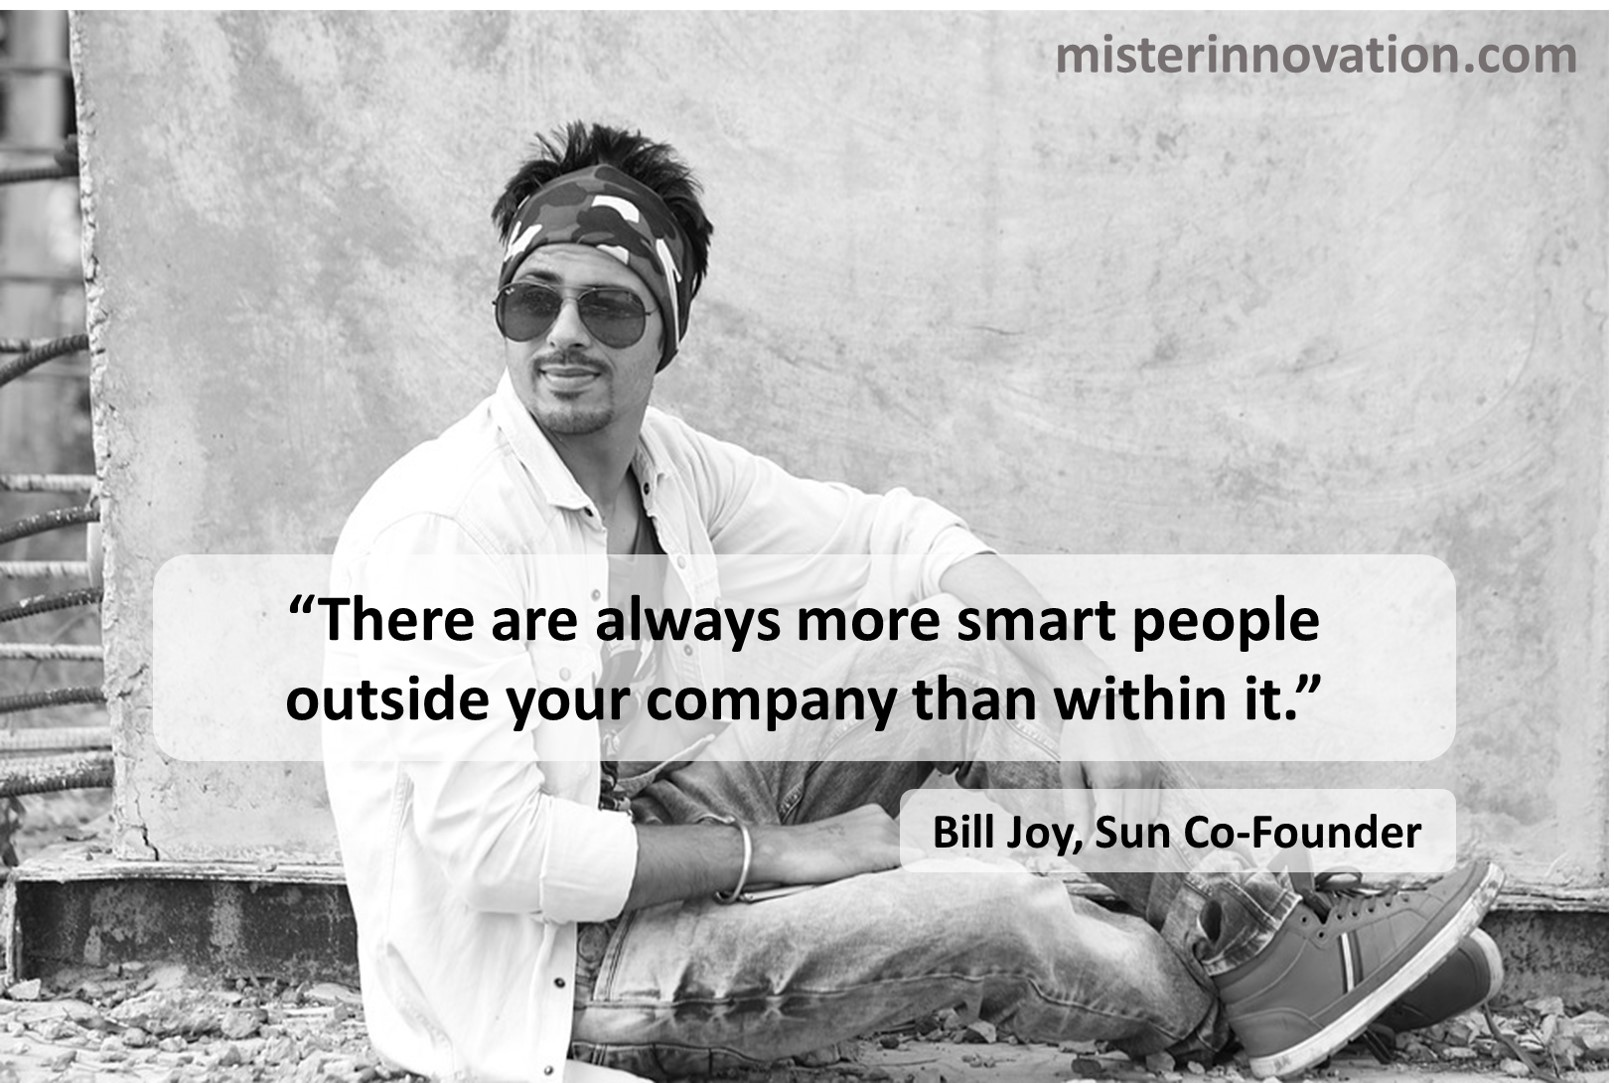 Bill Joy Quote on Smart People Outside